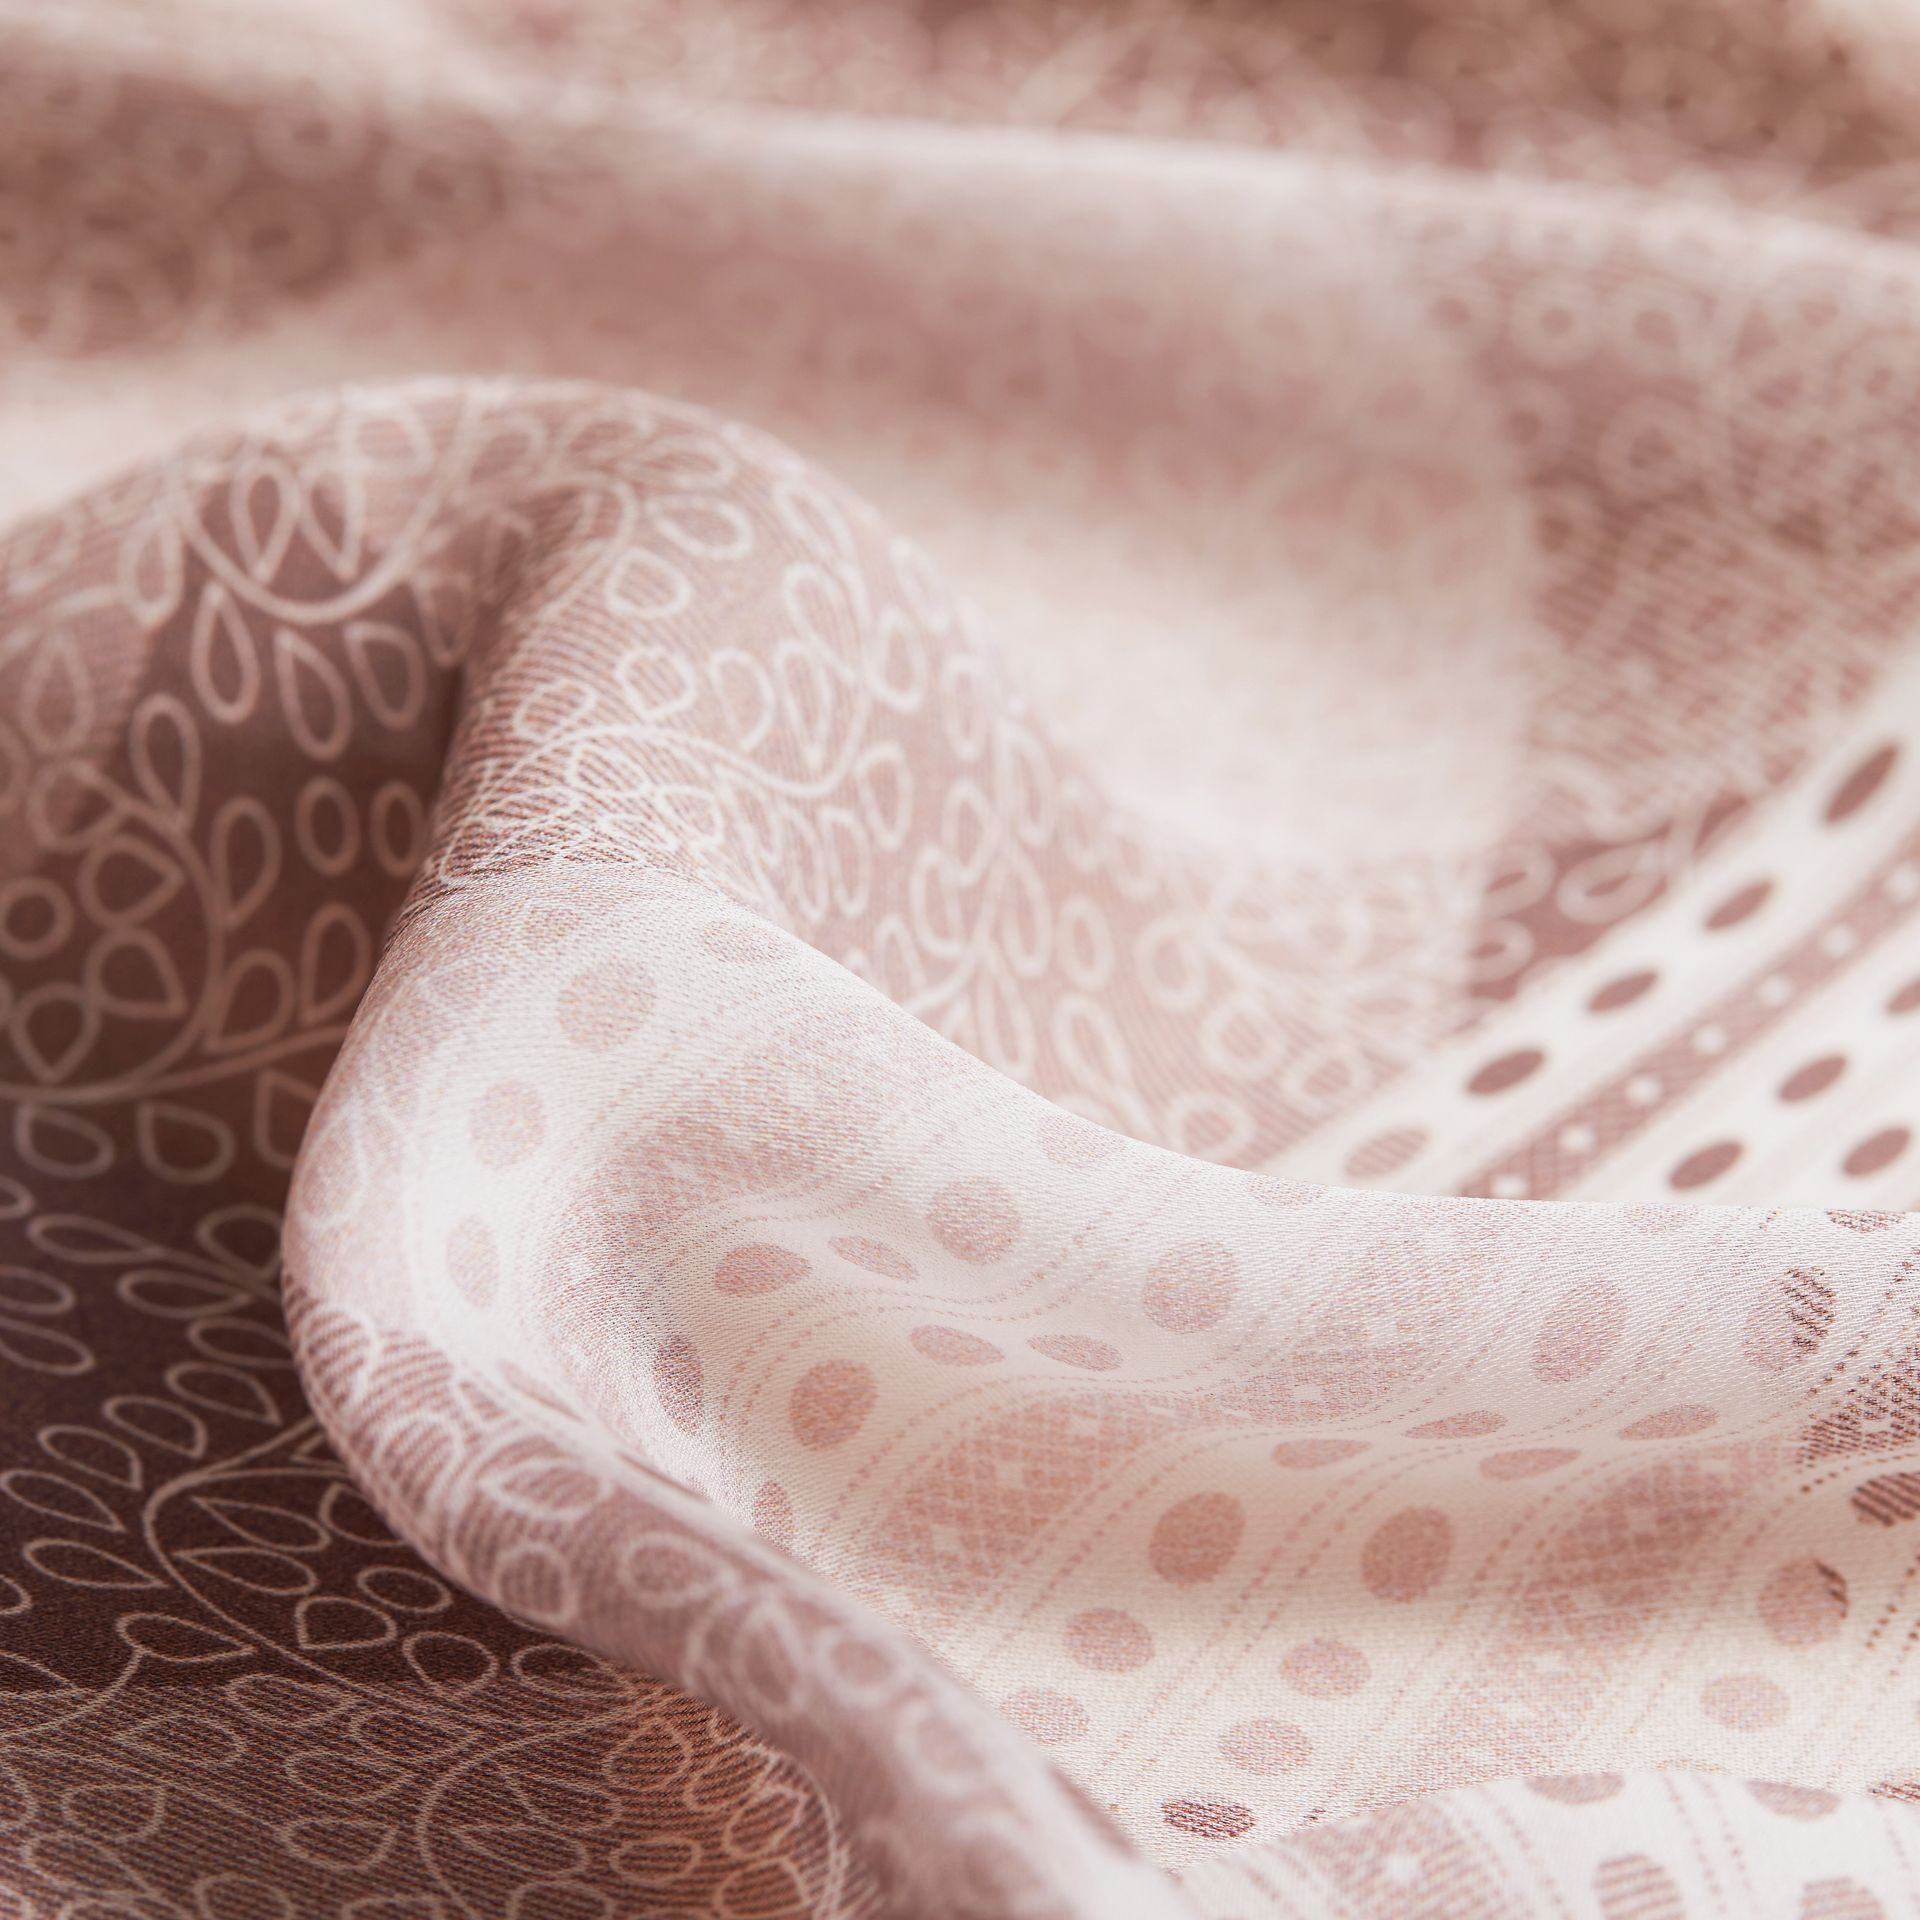 Floral Lace and Check Print Silk Scarf in Ash Rose - Women | Burberry - gallery image 2